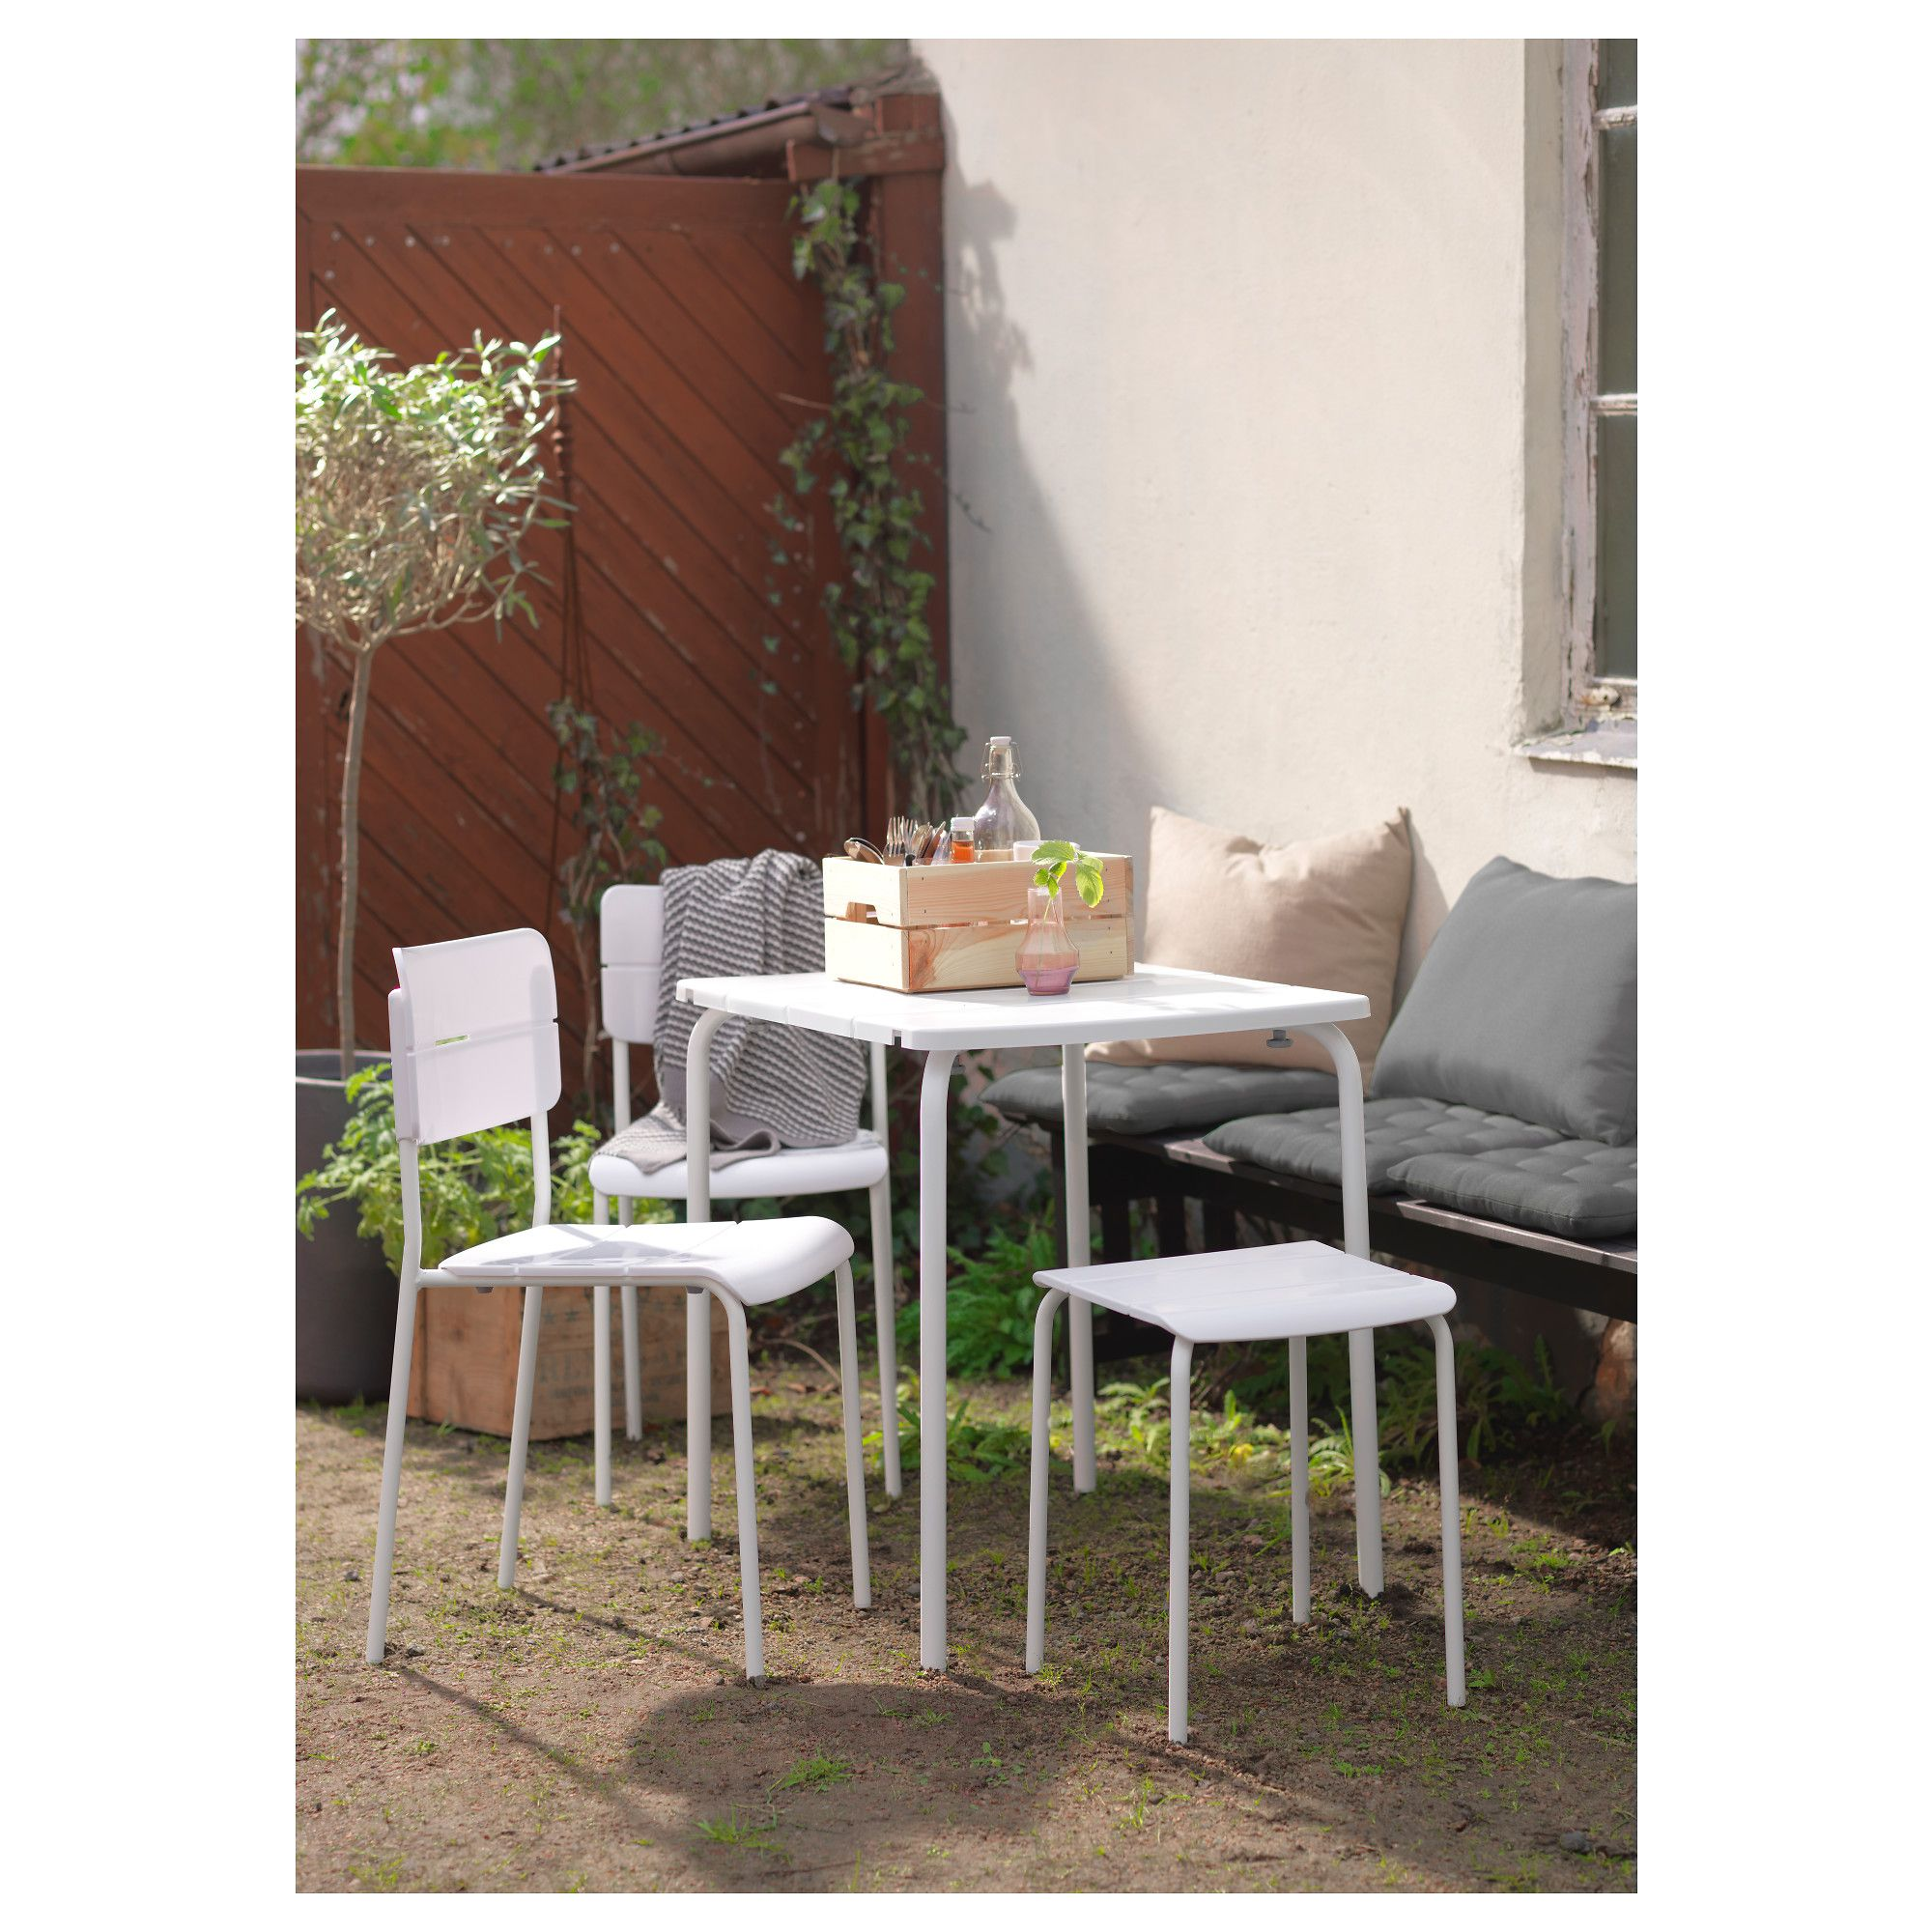 Ikea Väddö Table Outdoor White Products Ikea Outdoor